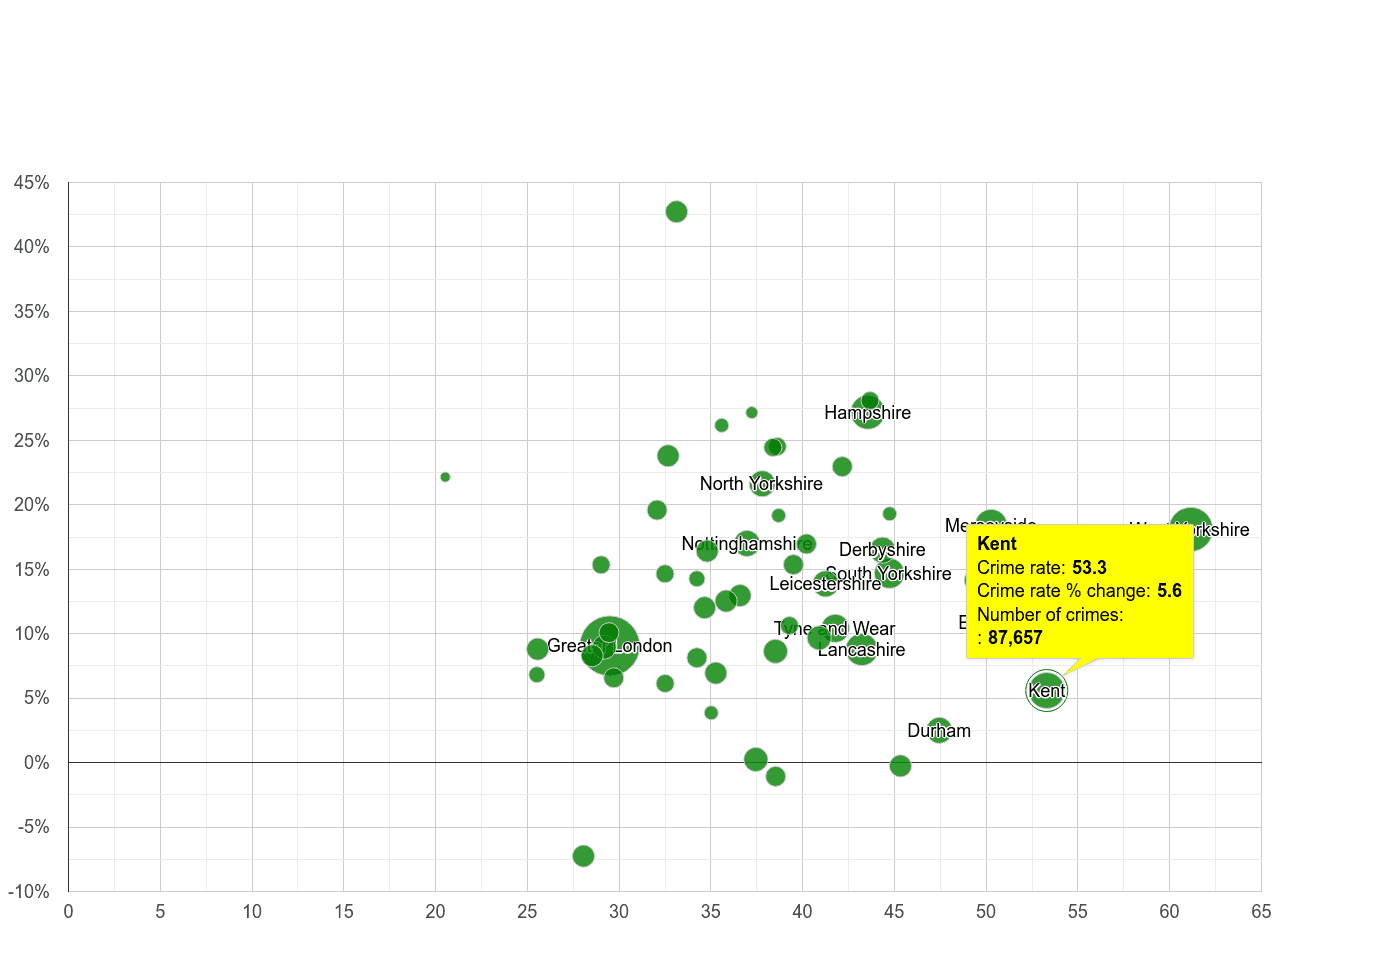 Kent violent crime rate compared to other counties